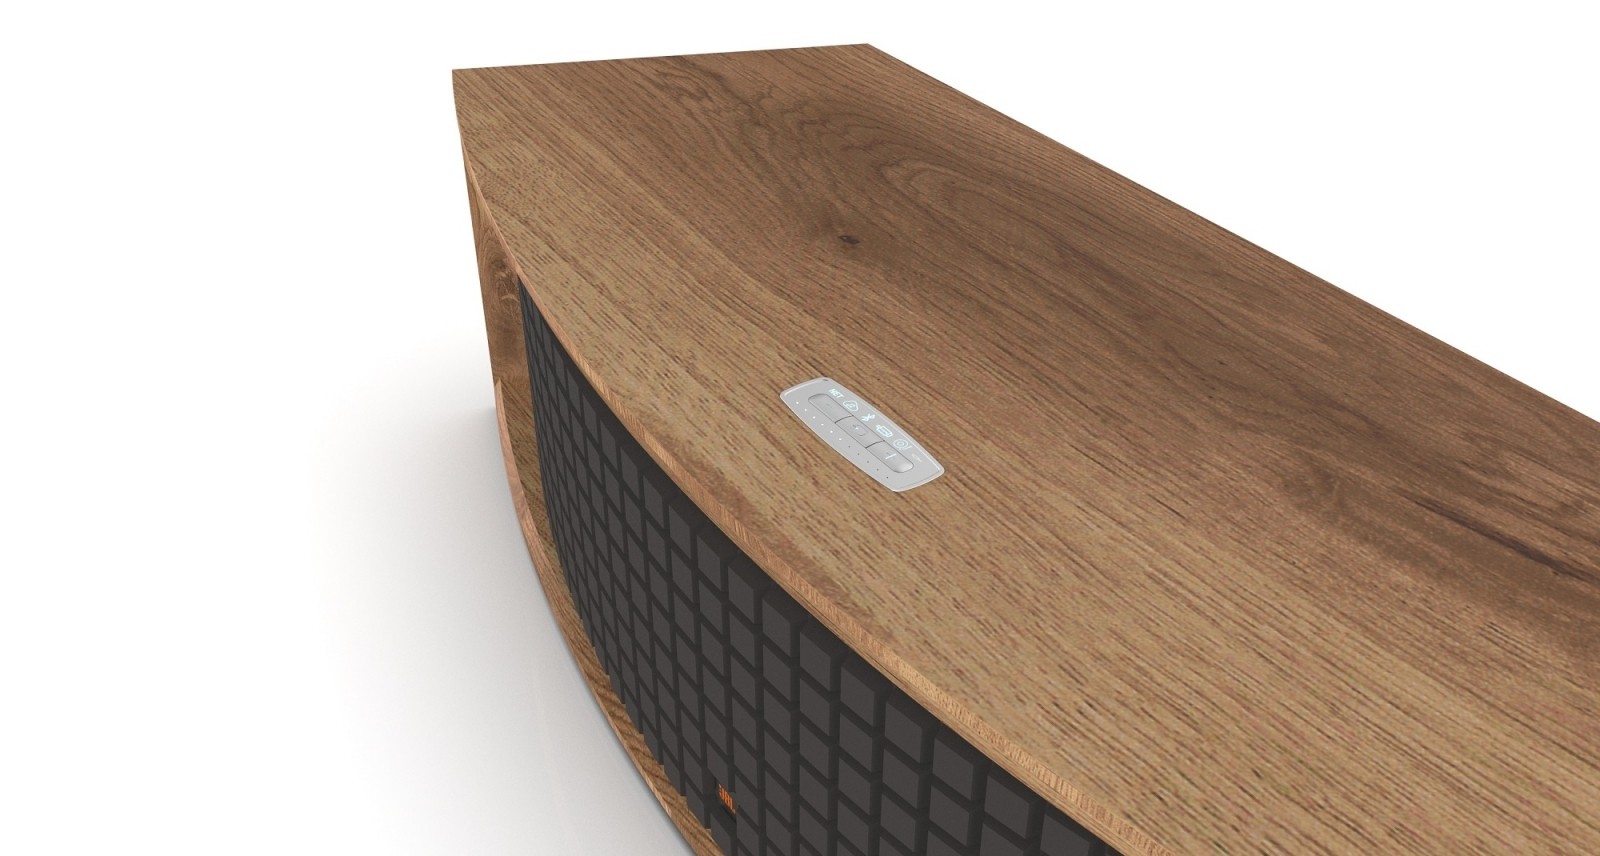 JBL L75ms all-in-one music system